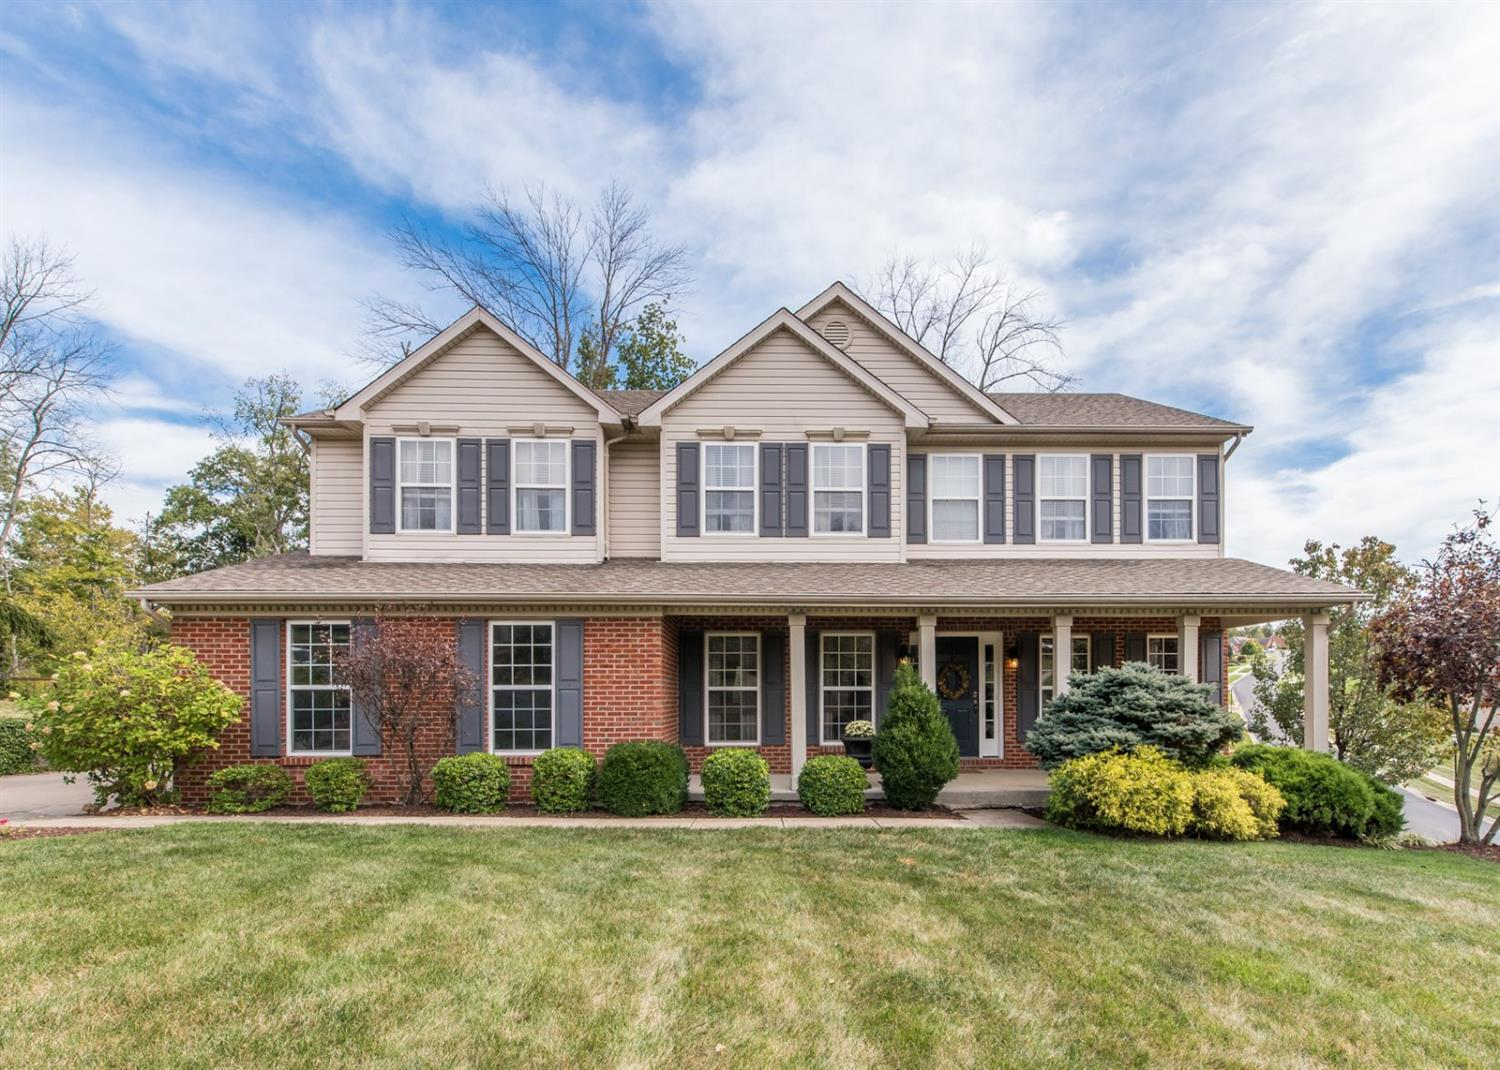 8240 Hamptonshire Dr Miami Twp. (West), OH